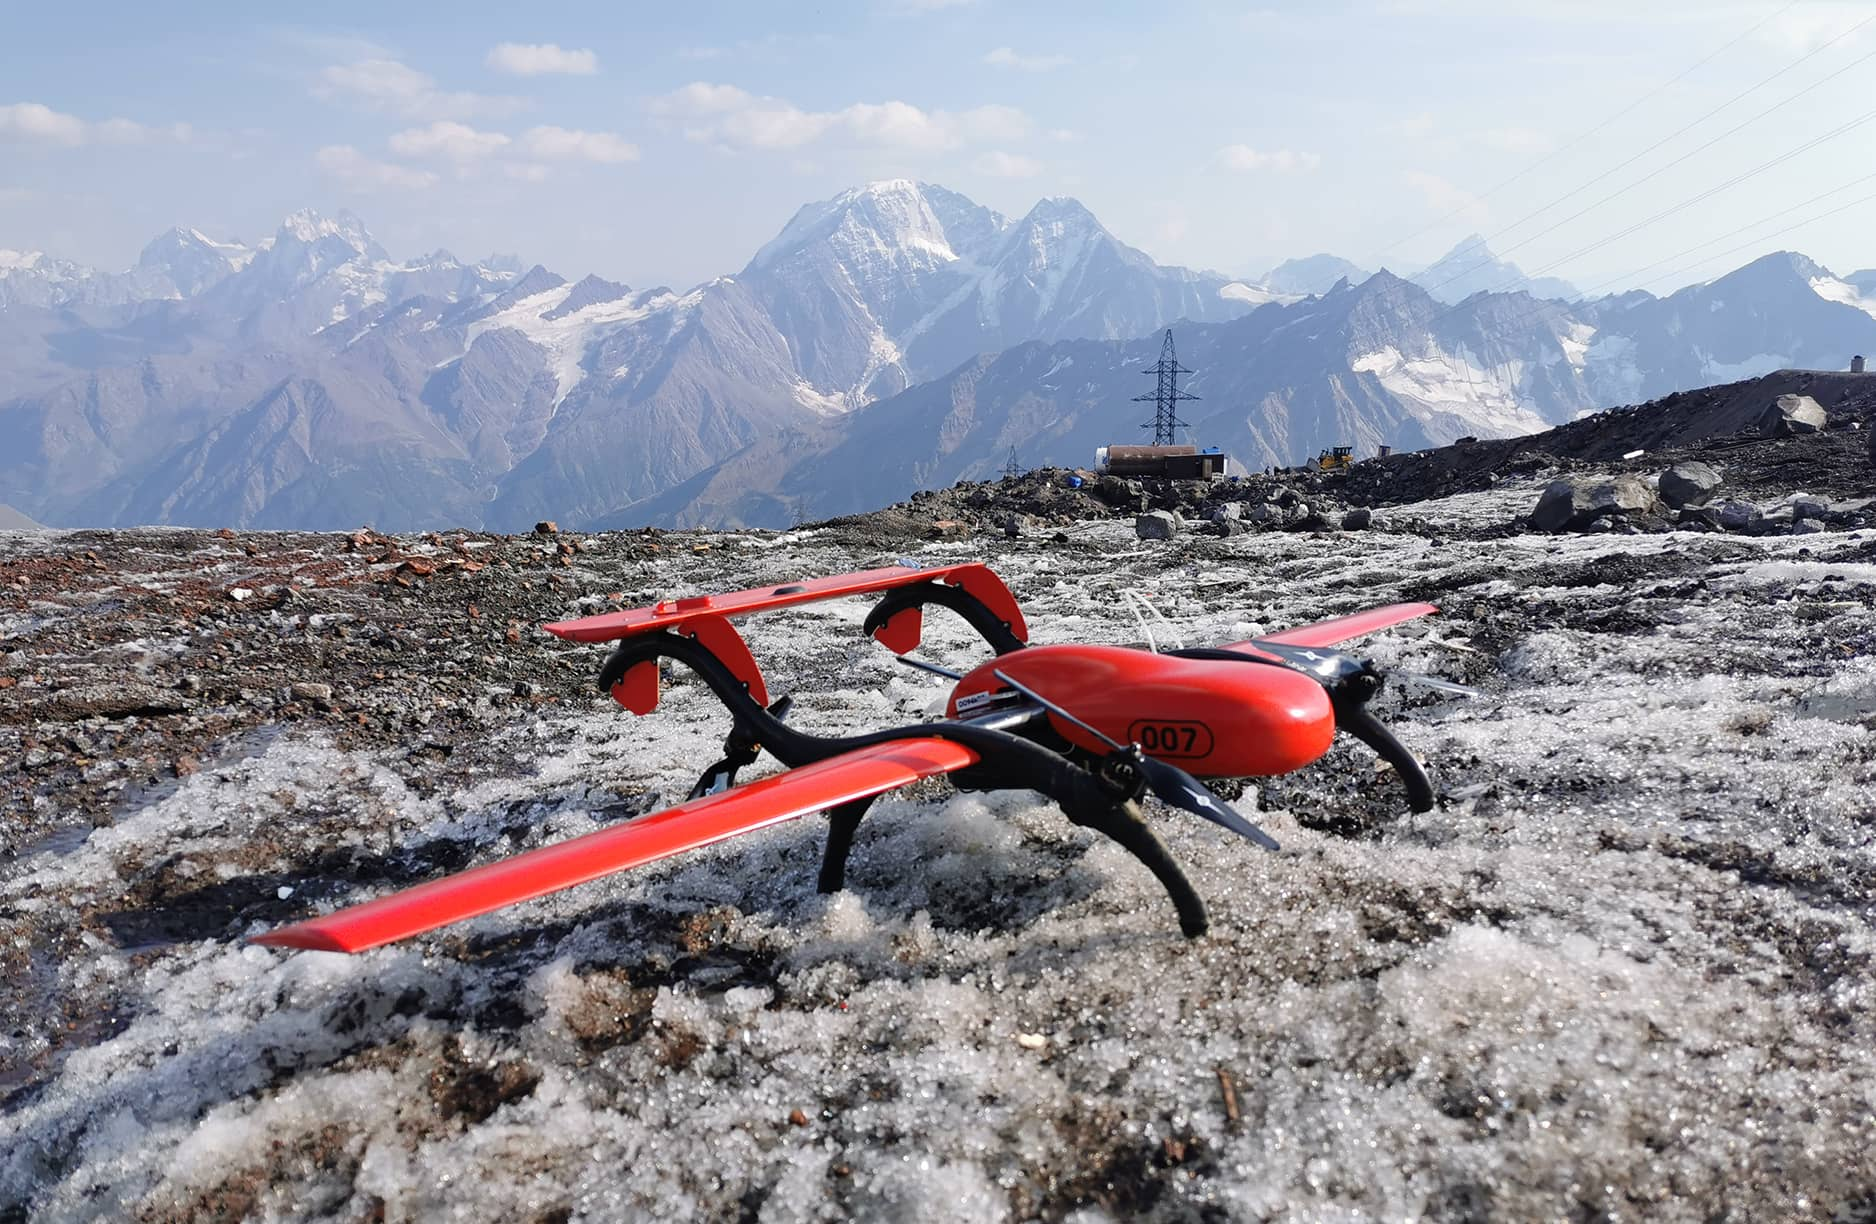 AERIAL PHOTOGRAPHY ON ELBRUS